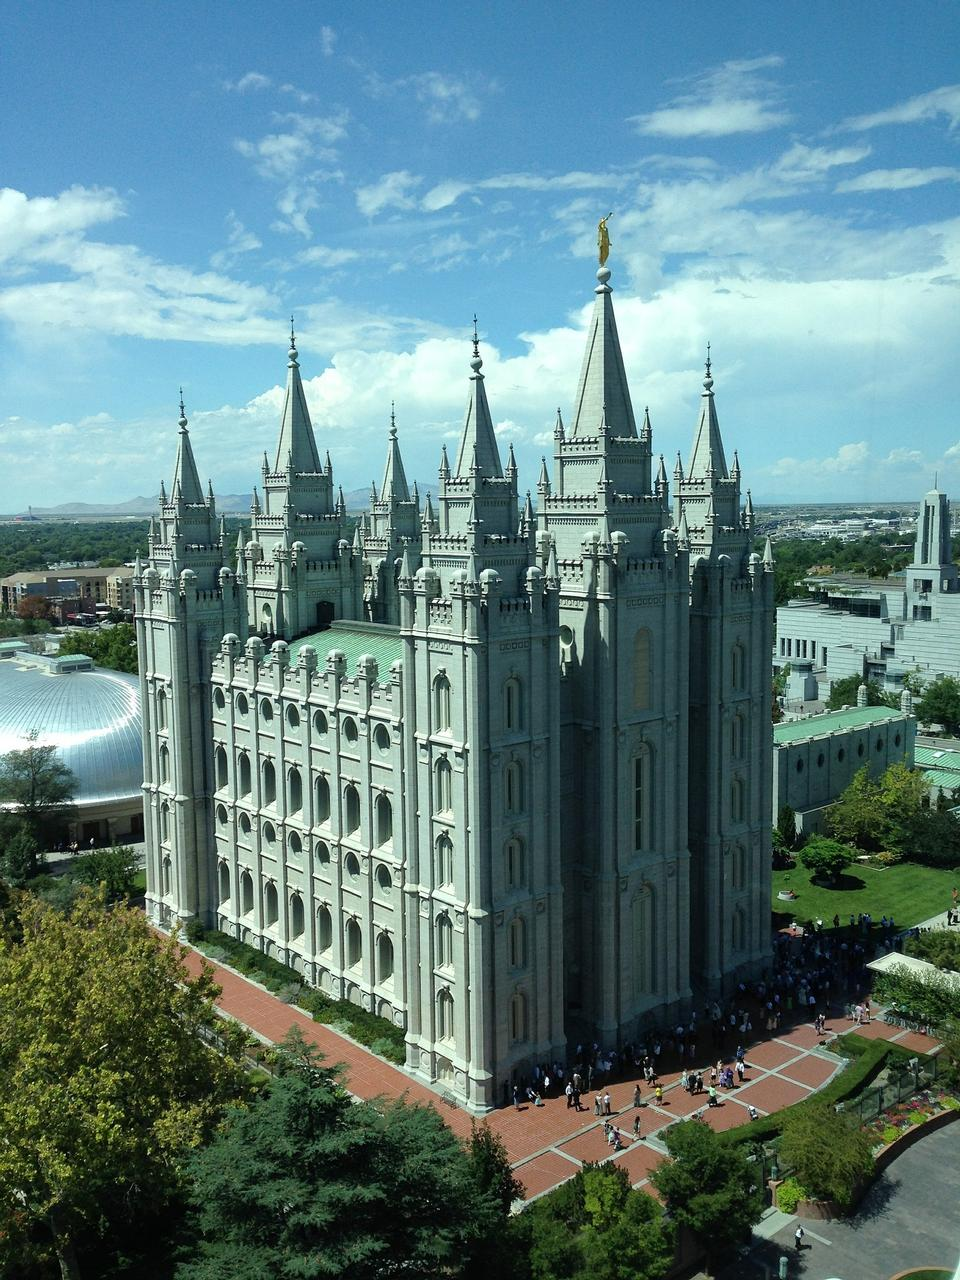 The Salt Lake City, Utah LDS (Mormon) temple